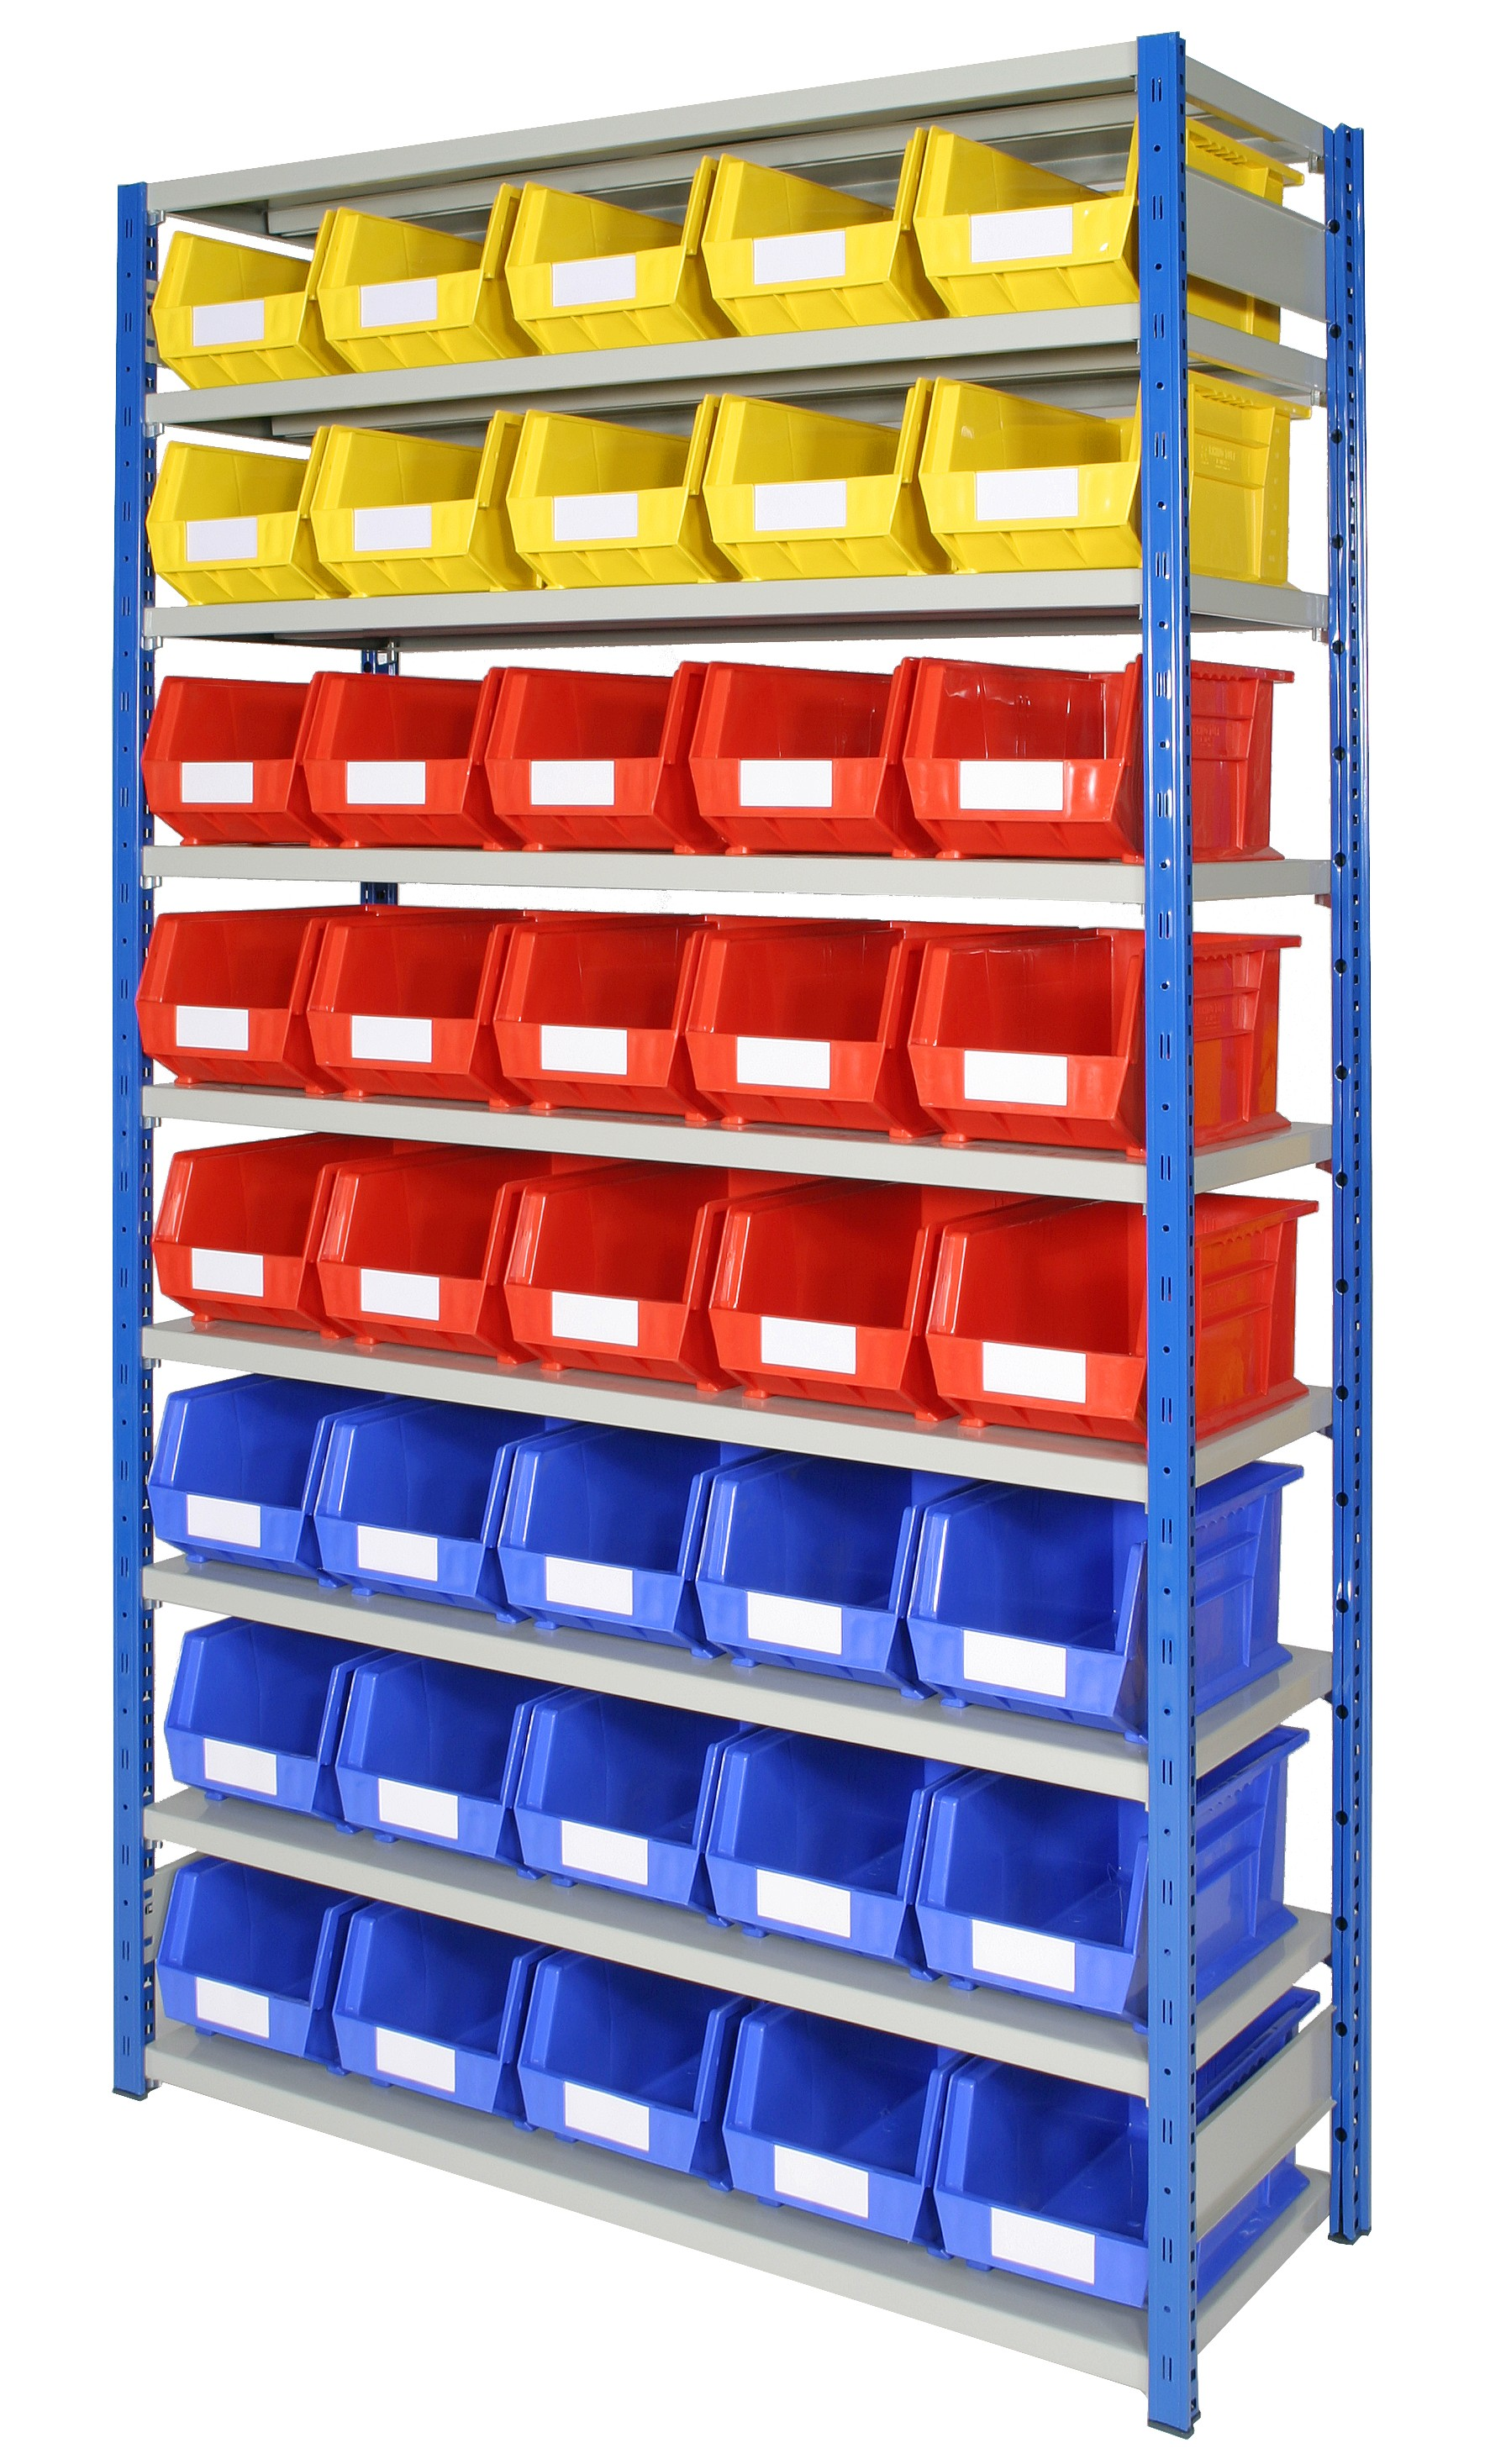 Expo 4 Bays with Plastic Bins - Option A